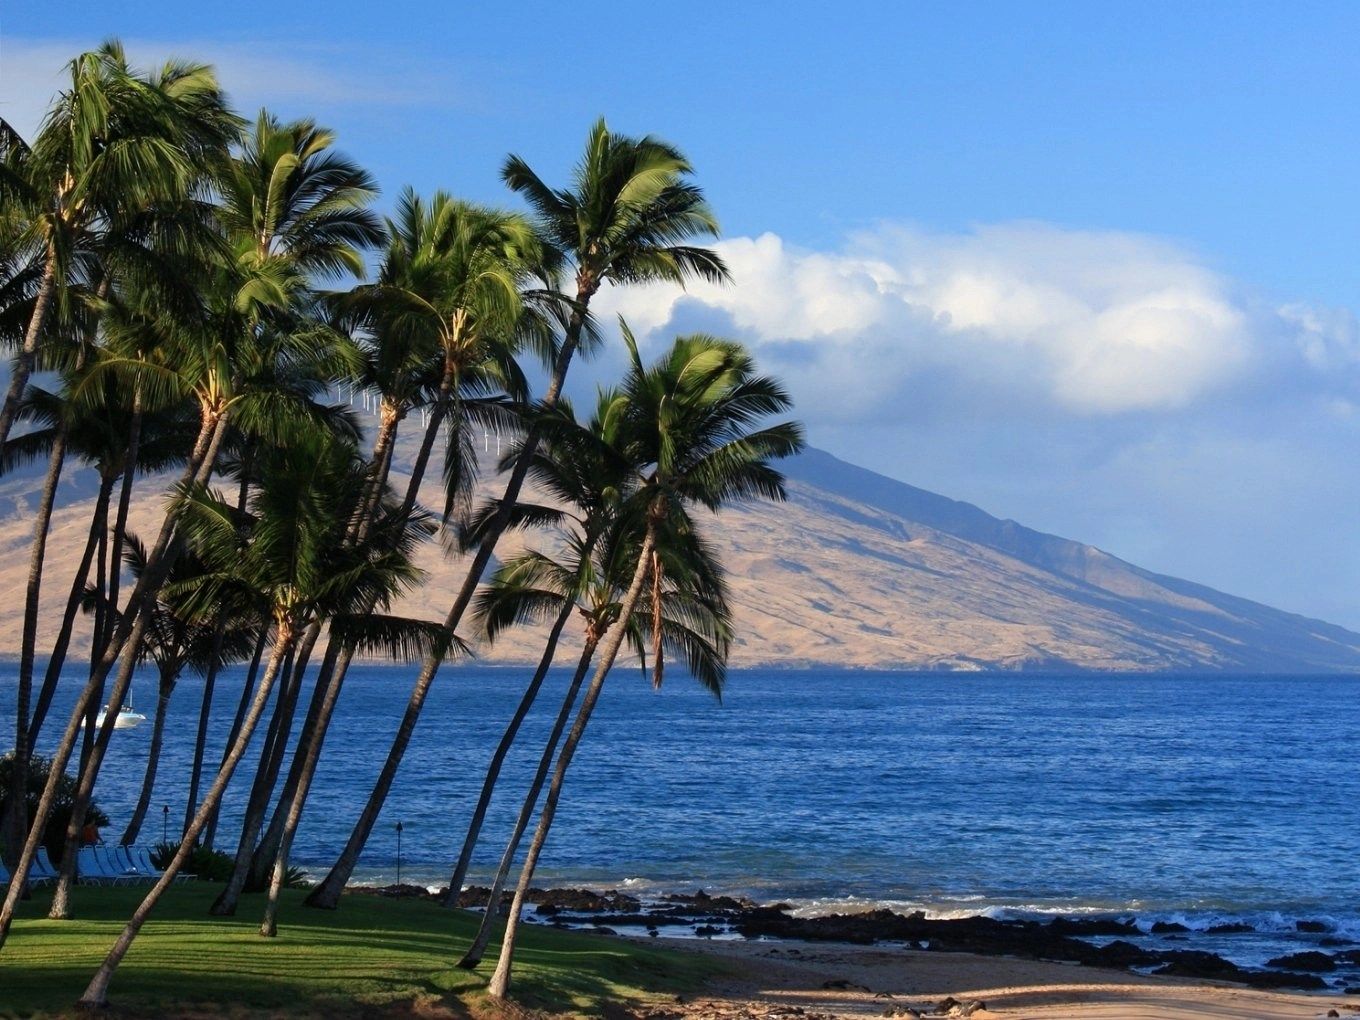 Lodging & Dining In Maui